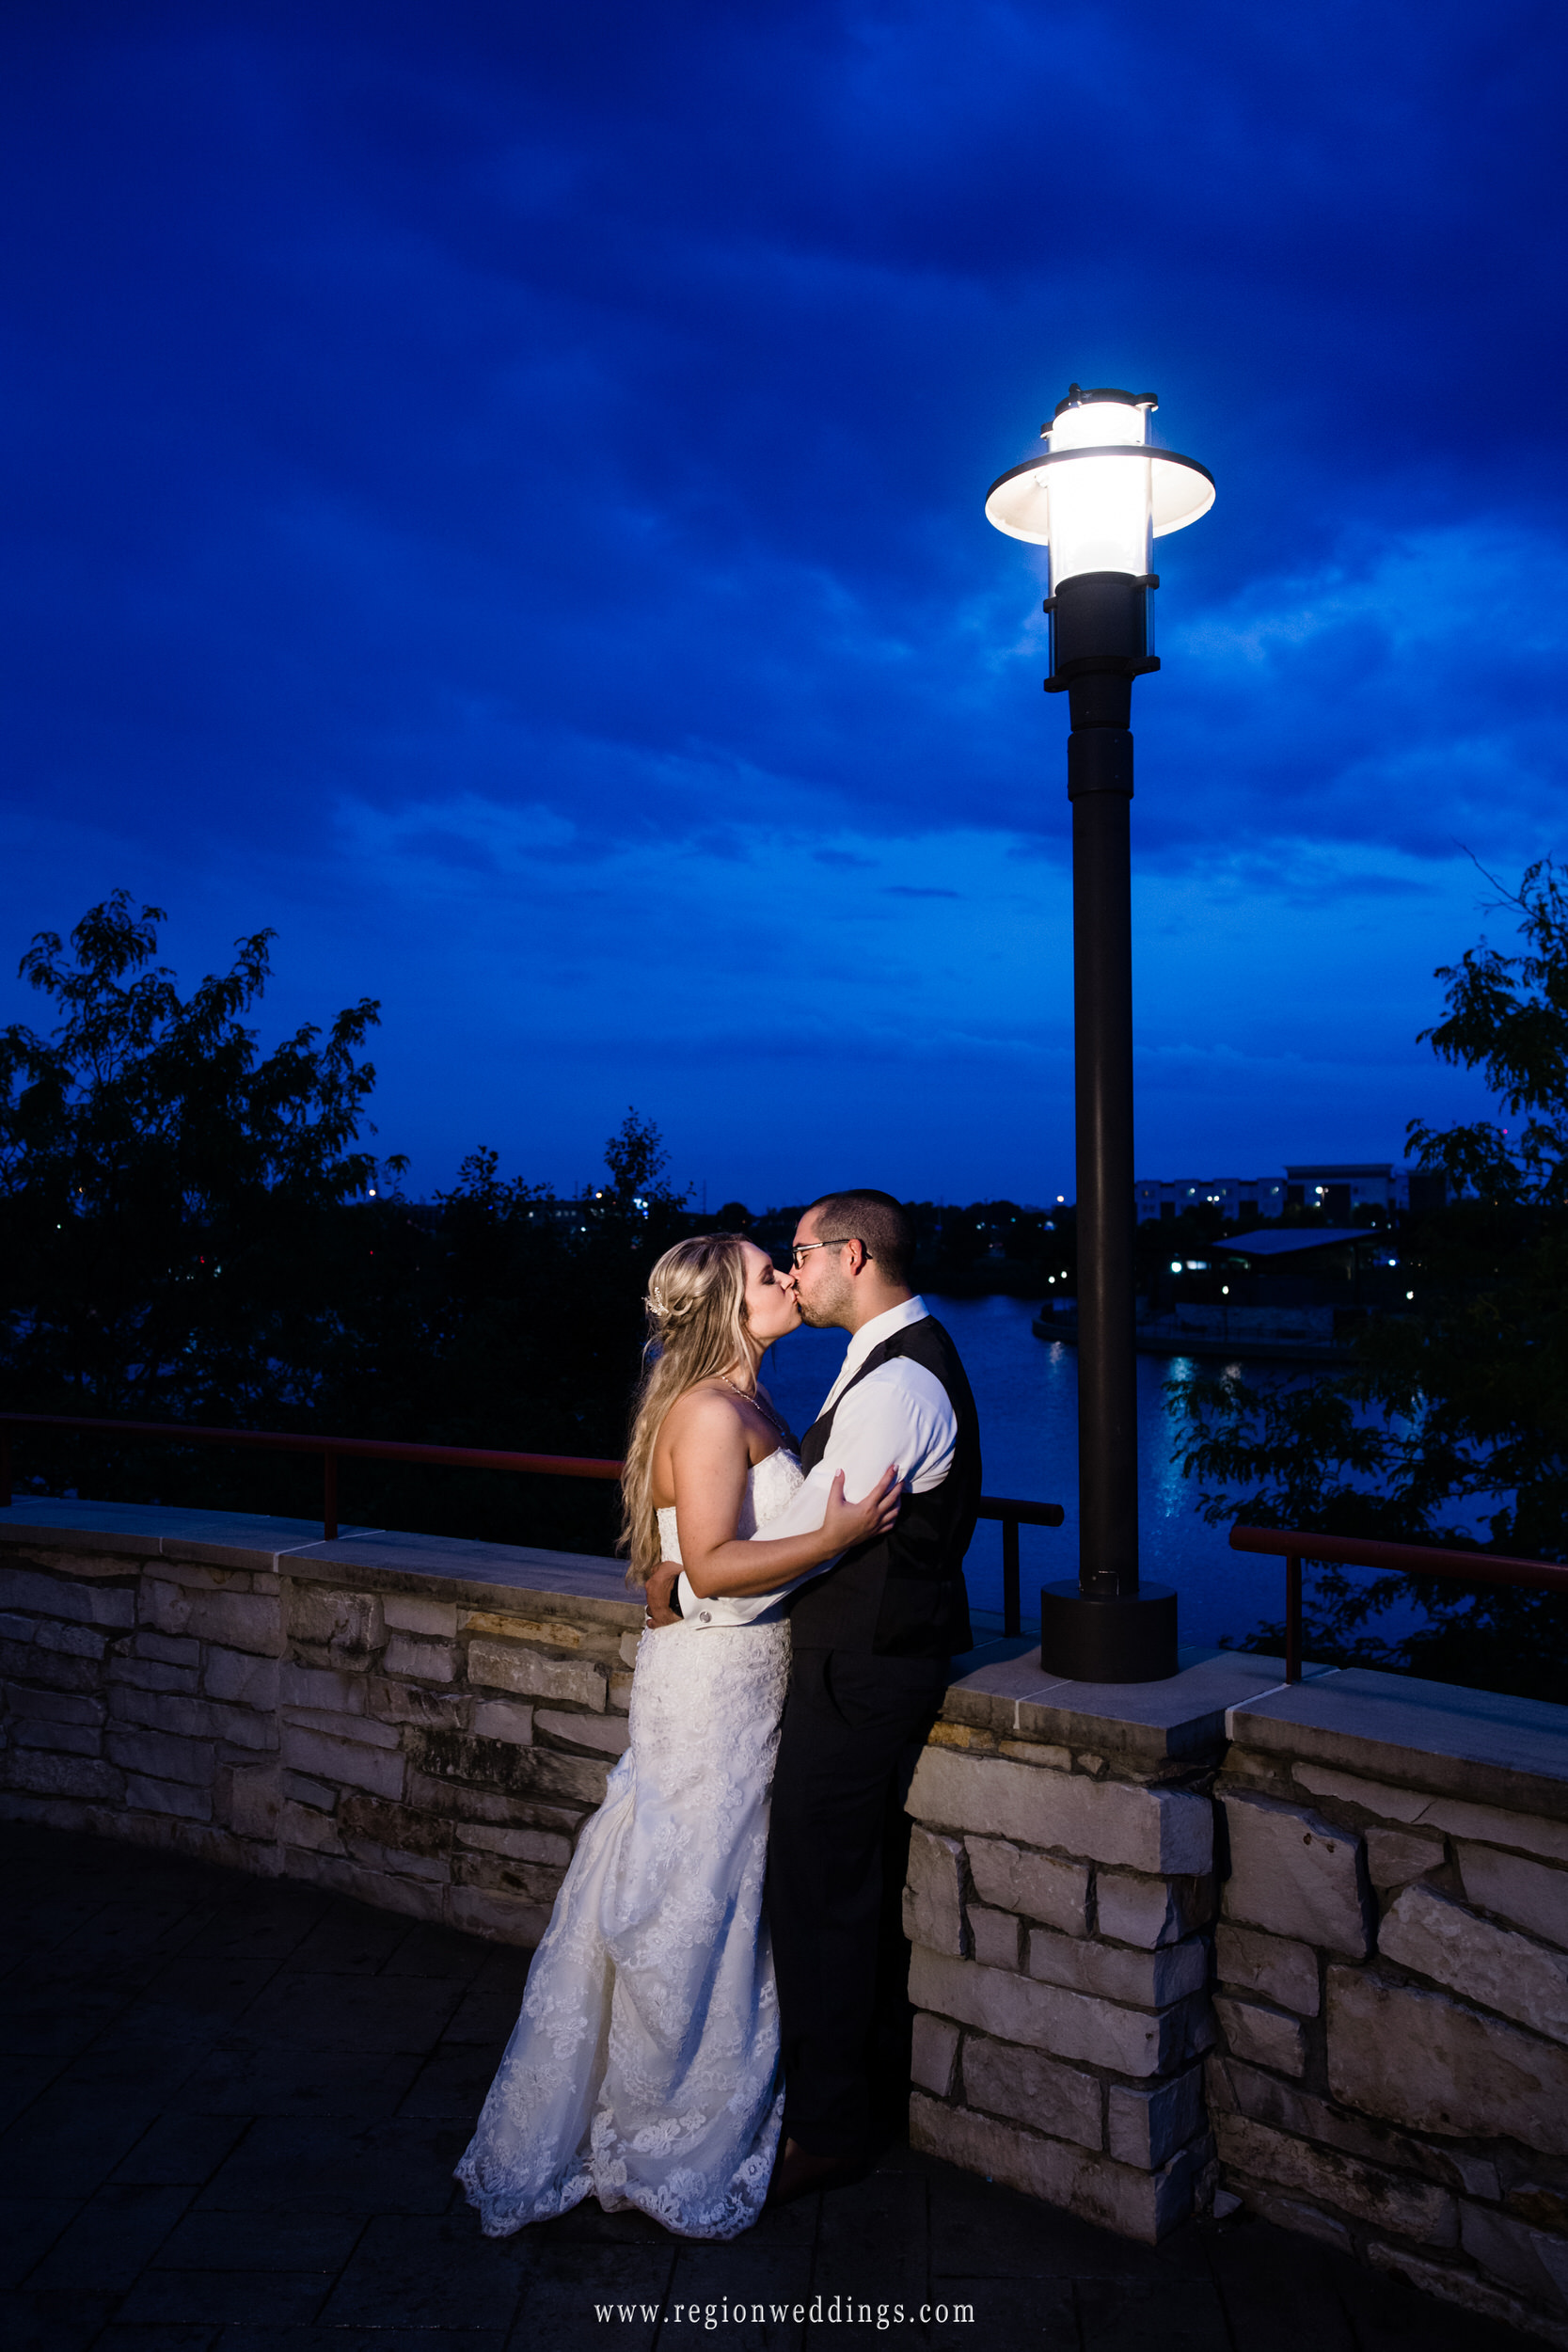 A night time wedding photo at Centennial Park in Munster, Indiana.